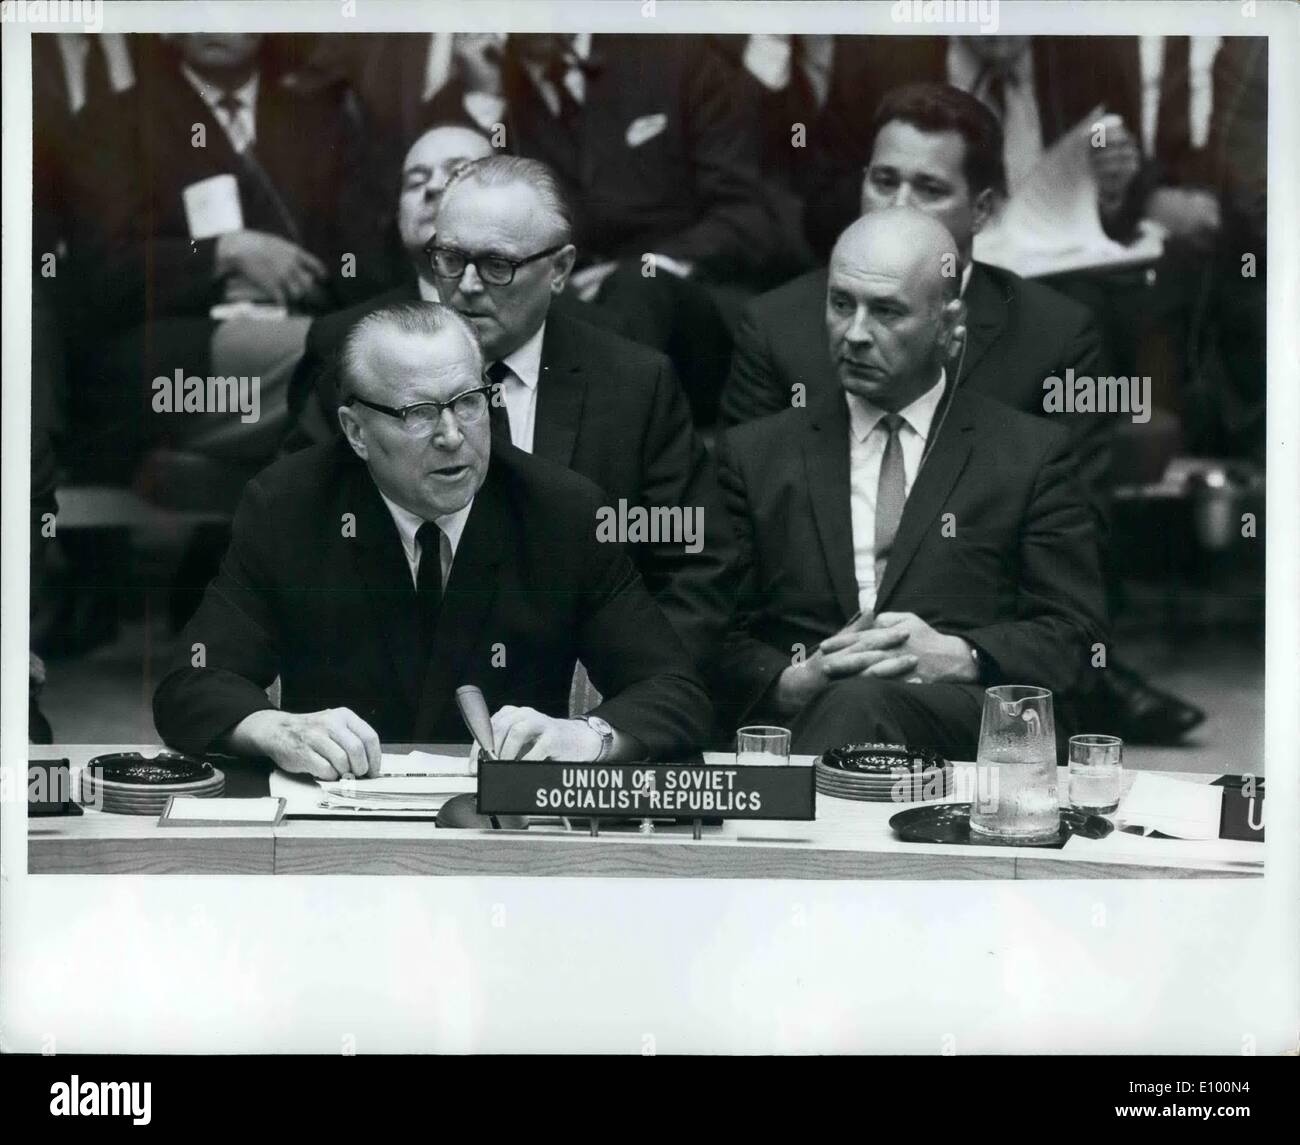 Feb. 02, 1972 - Security Council begins debate on situation in Czechoslovakia: The Security Council tonight began debate, at the request of six Council members, concerning ''the present serious situation in the Czechoslovakia Socialist Republic''. the decision to take up this item - as requested today by Canada, Denmark, France, Paraguay the United Kingdom and the United Stated - was taken by a vote of 13 in favour to 2 against (Hungary, soviet Union) - Stock Image